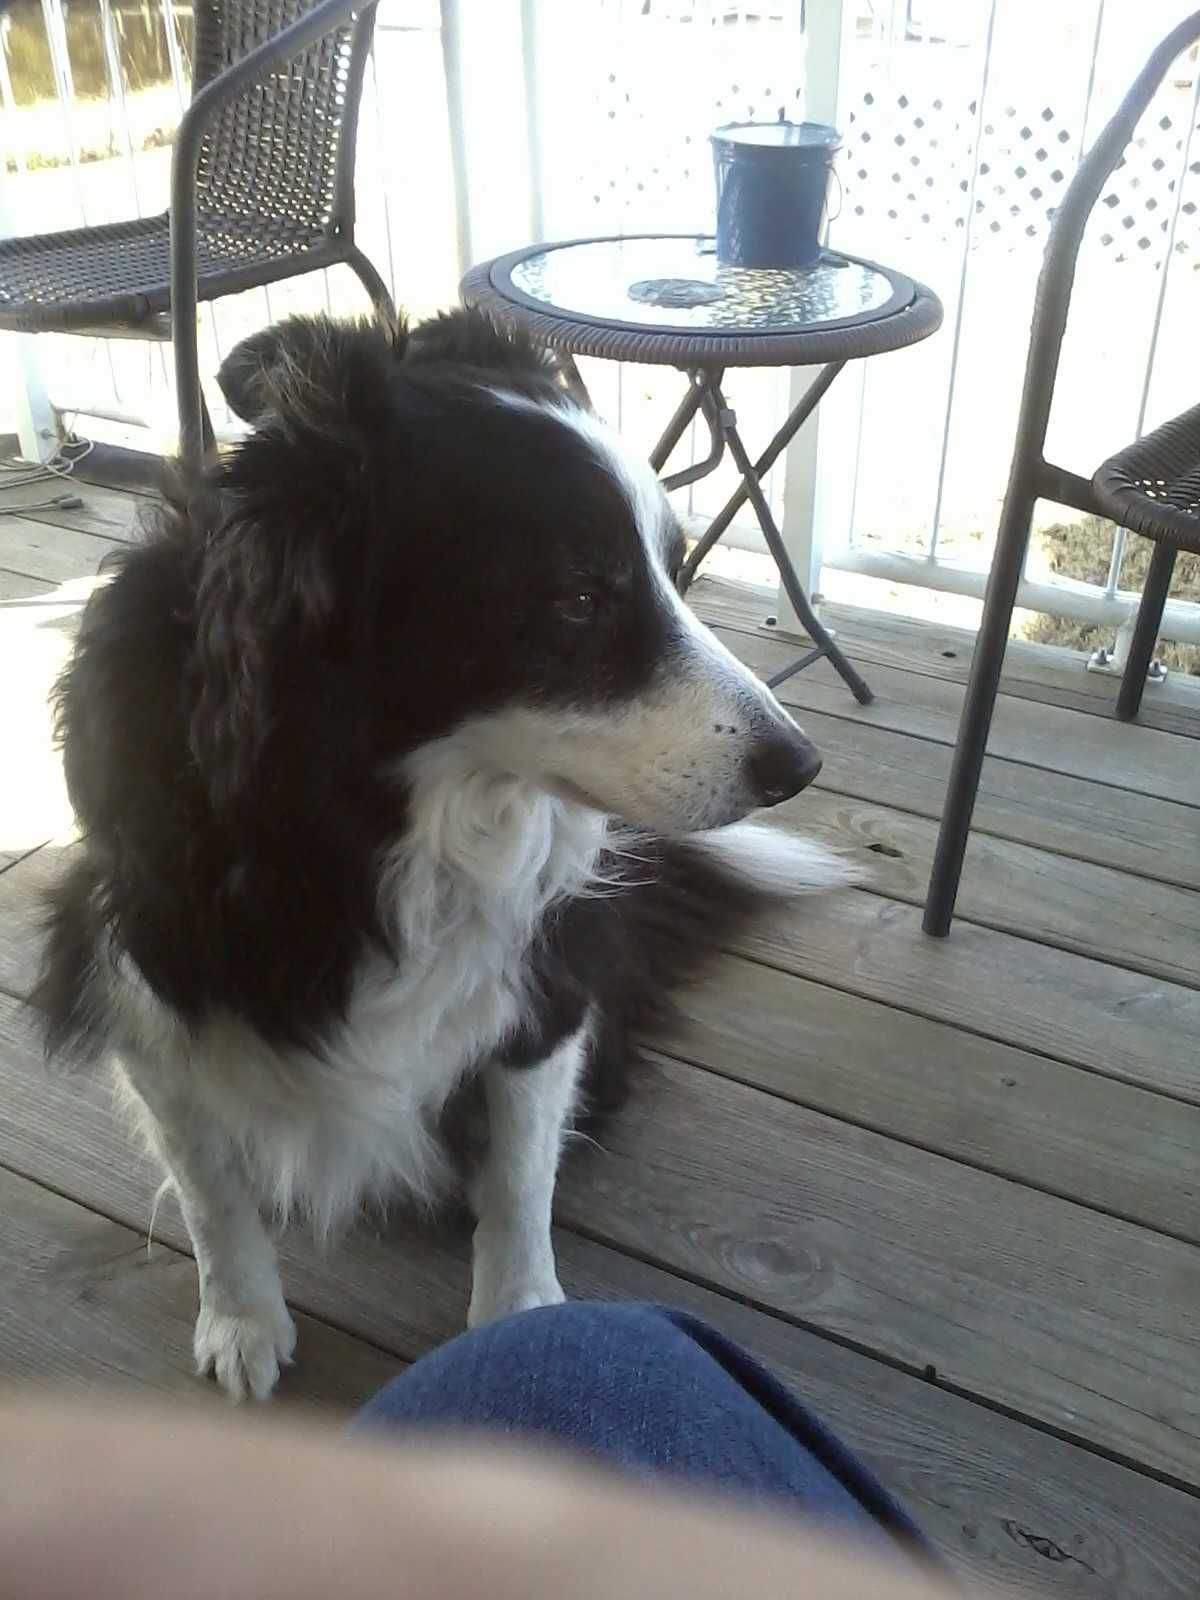 Parents Name: Charlie and Johnnie Whitley Pets Name: Scotty Pet Species: Dog Pets Favorite thing to do: Catching his frisbee Eulogy: Our hearts were broken on June 21, 2012 when God saw you had suf...